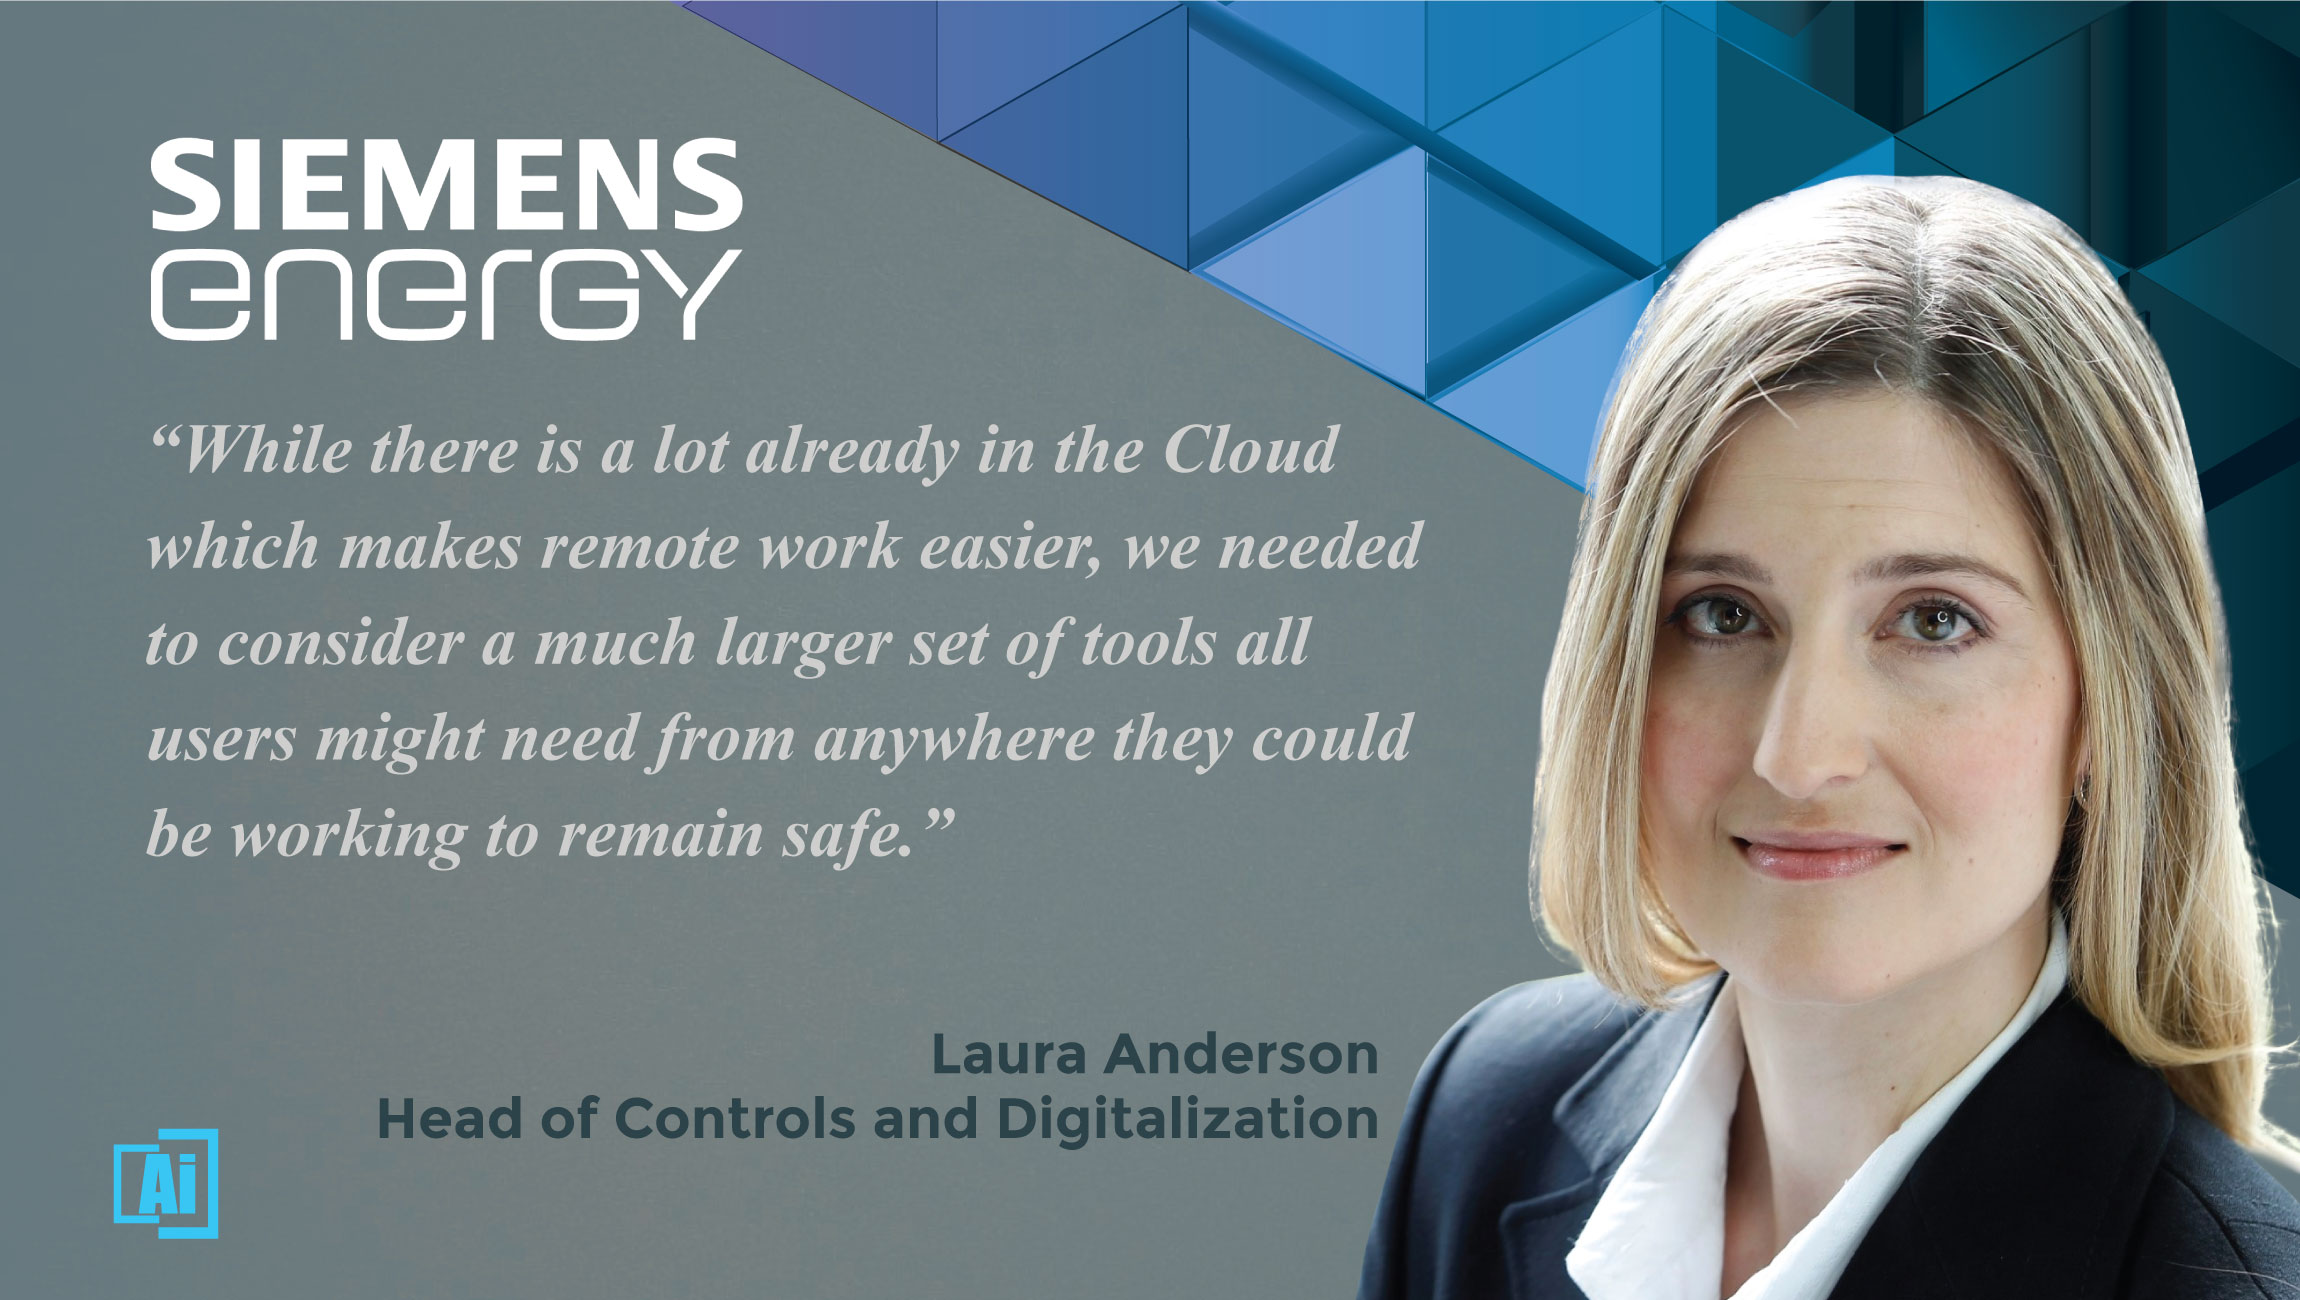 AiThority Interview With Laura Anderson, Head of Controls and Digitalization at Siemens Energy